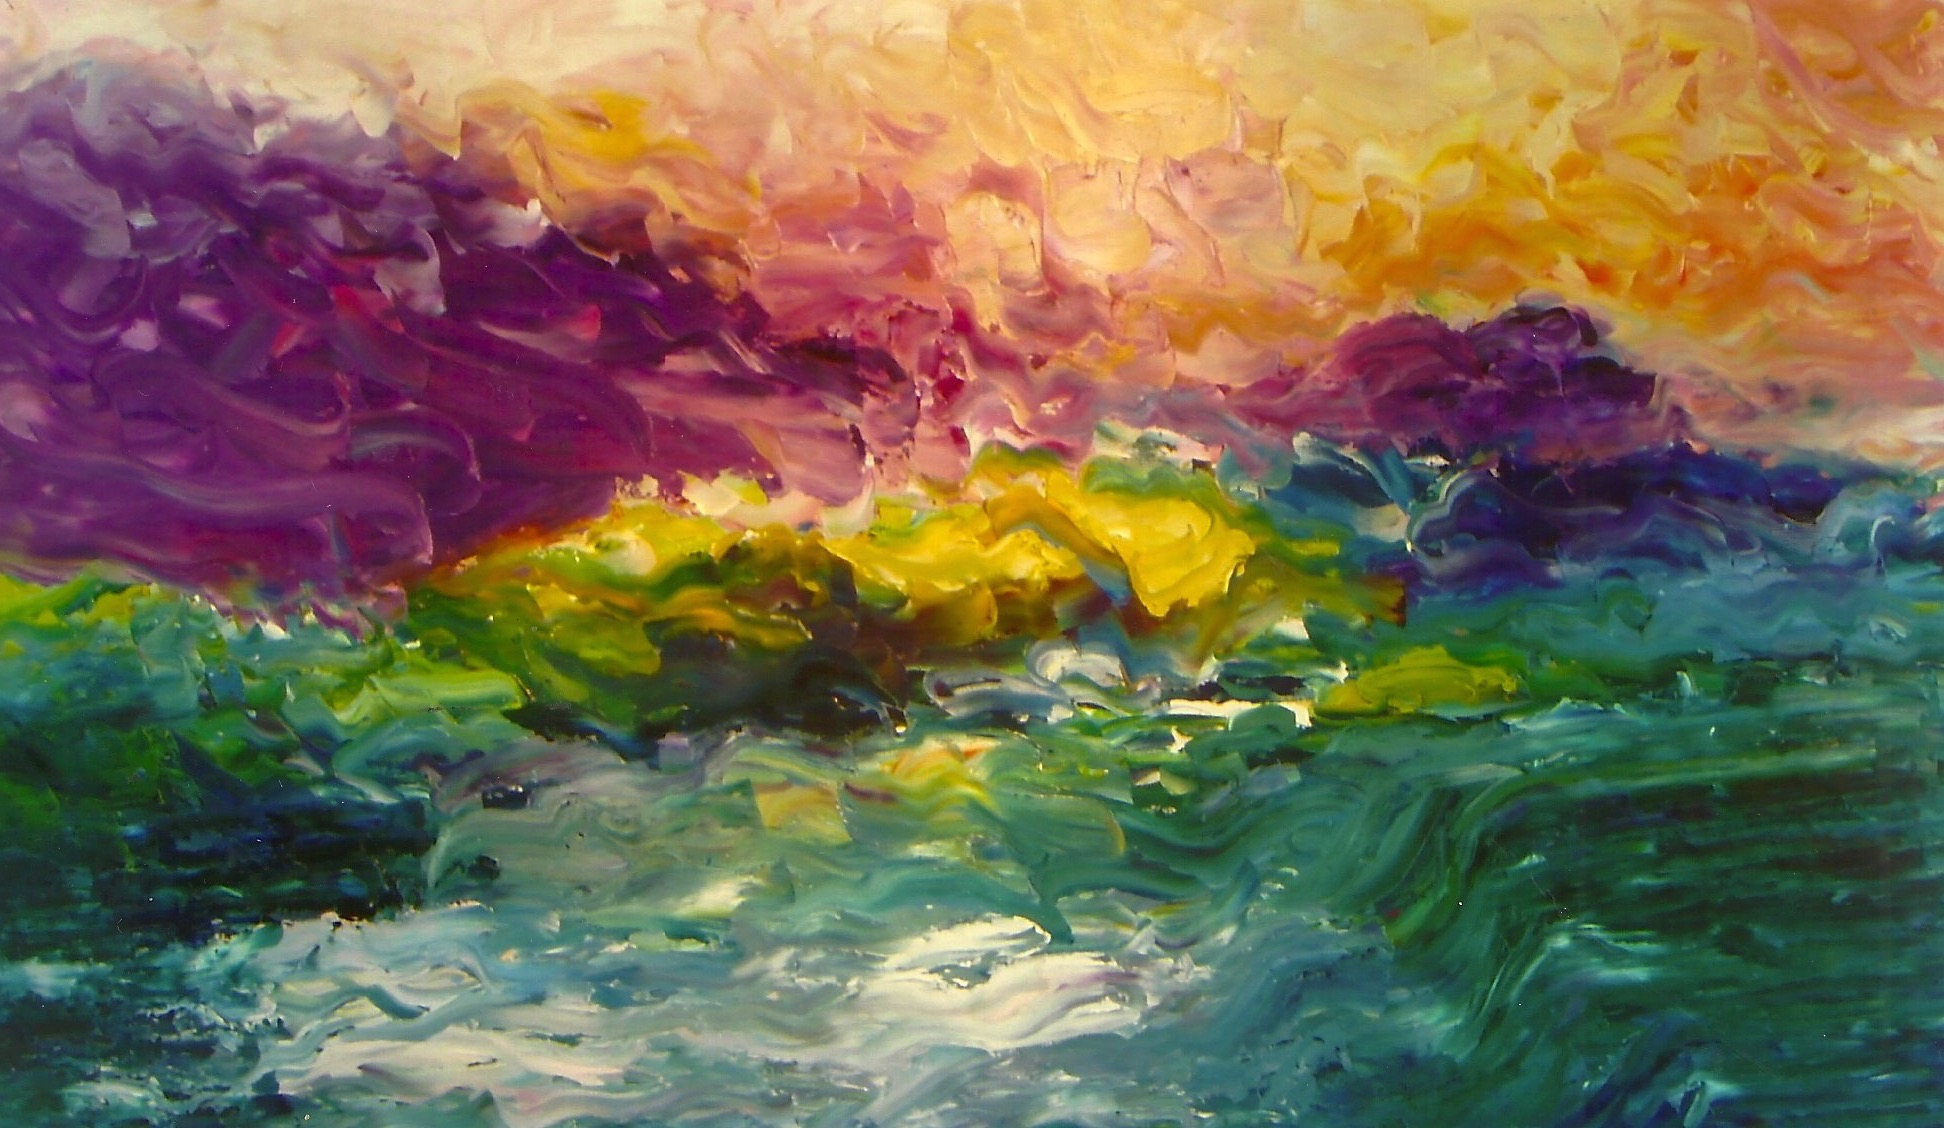 After The Storm (sold)